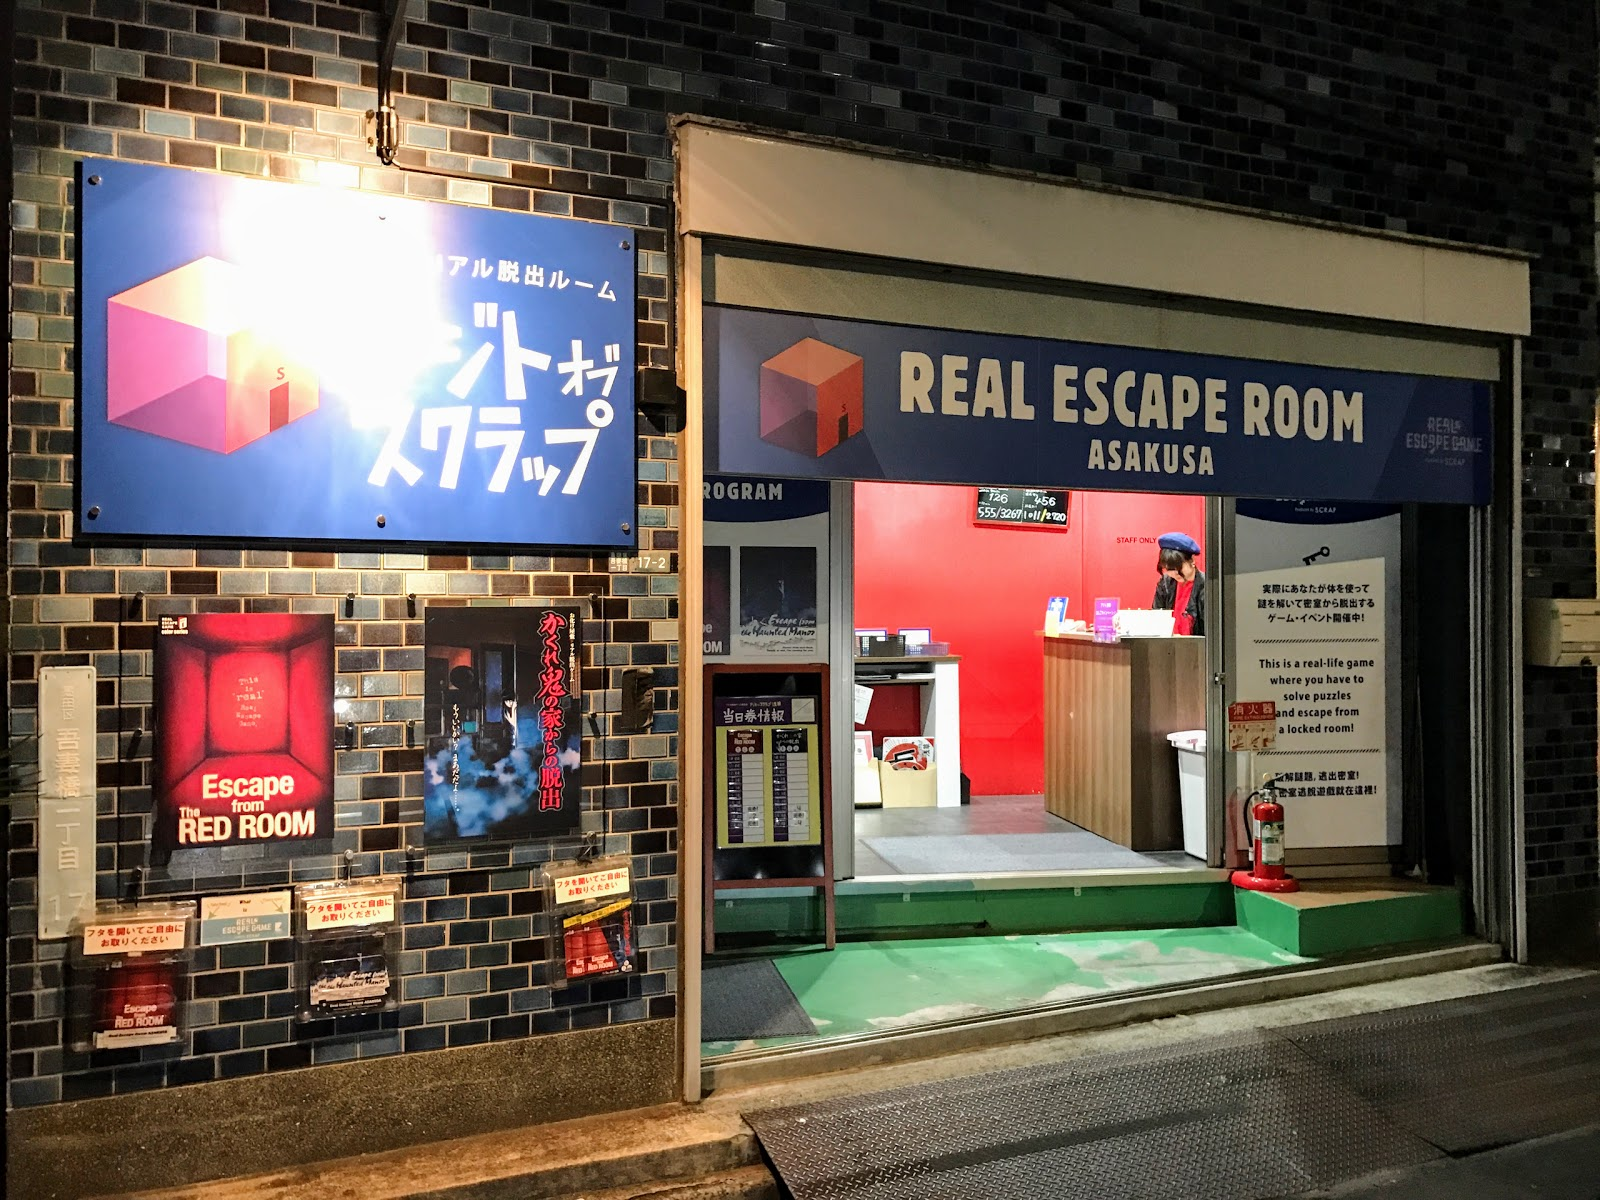 Tokyo Real Escape Room Asakusa Escape From The Red Room